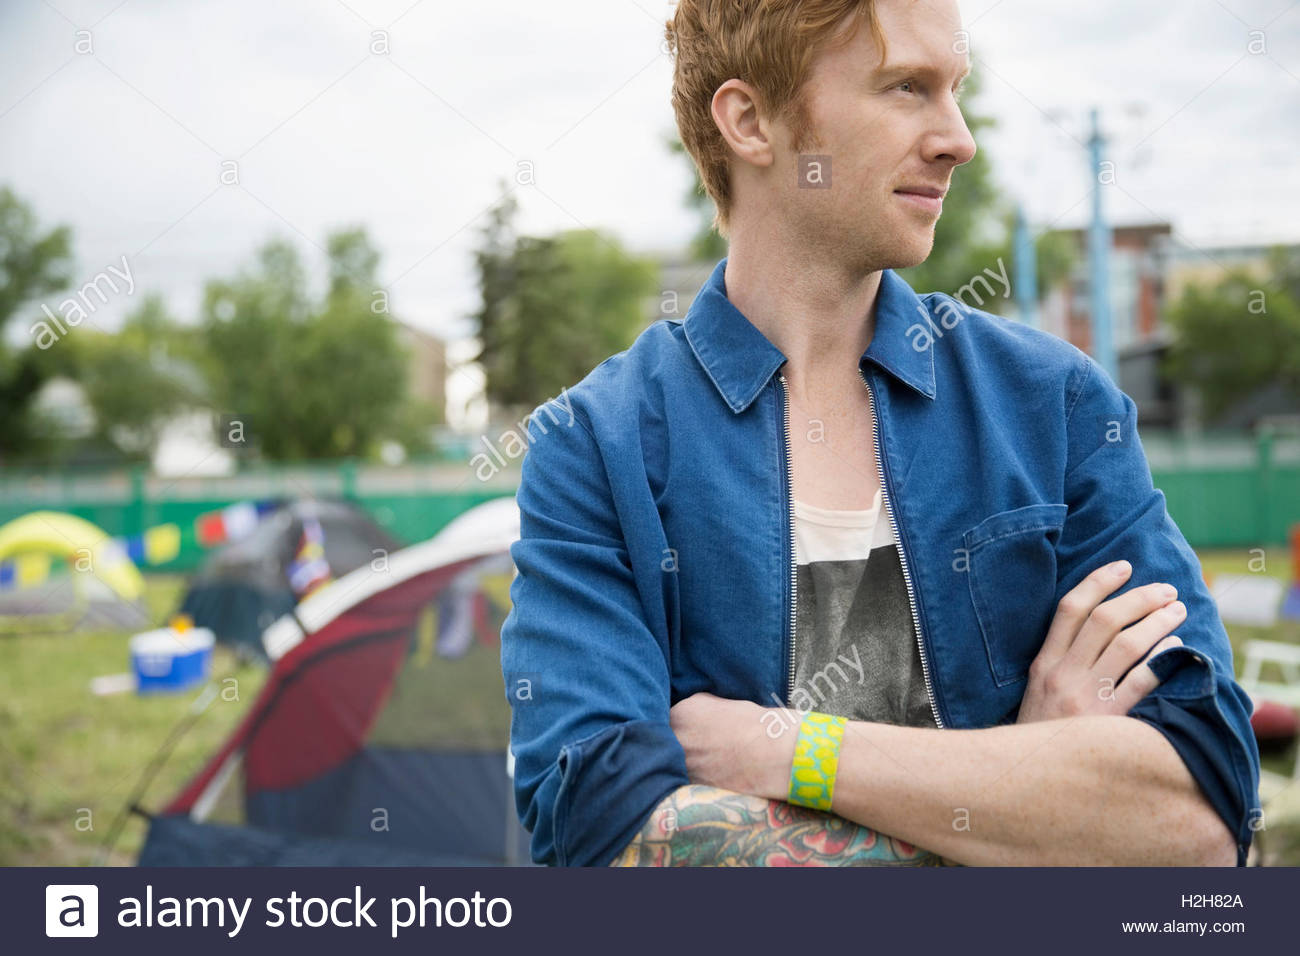 Portrait pensive young man with red hair looking away at summer music festival campsite - Stock Image